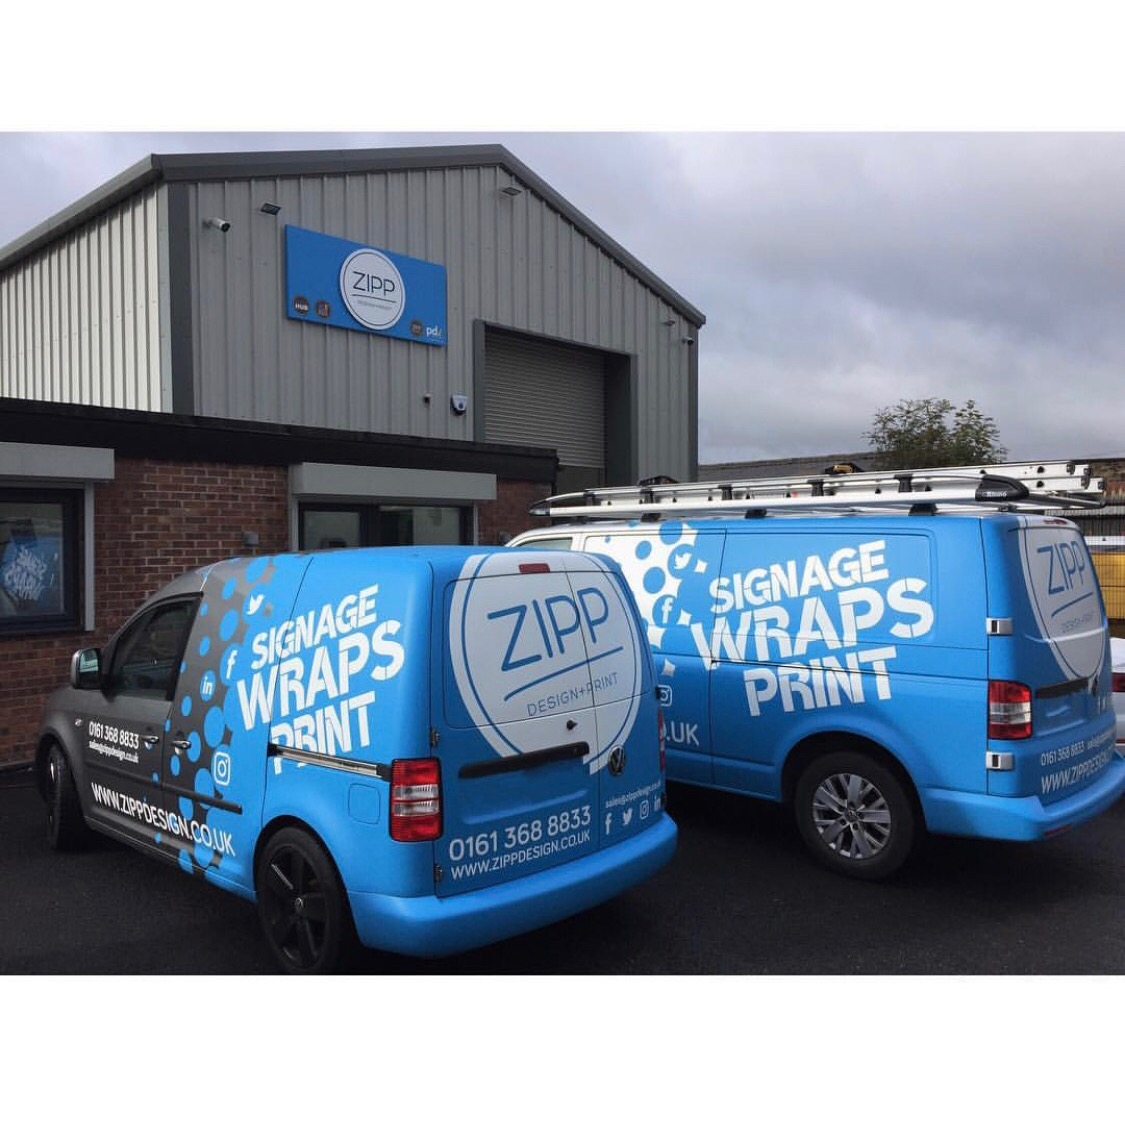 Vehicle Wrapping and Design Service - Our in house design team are fully experienced in designing graphics for any vehicle from one off cars to a fleets of vans. With over 40 years experience in designing, our team is dedicated in providing you with a vehicle design to suit your brand image.